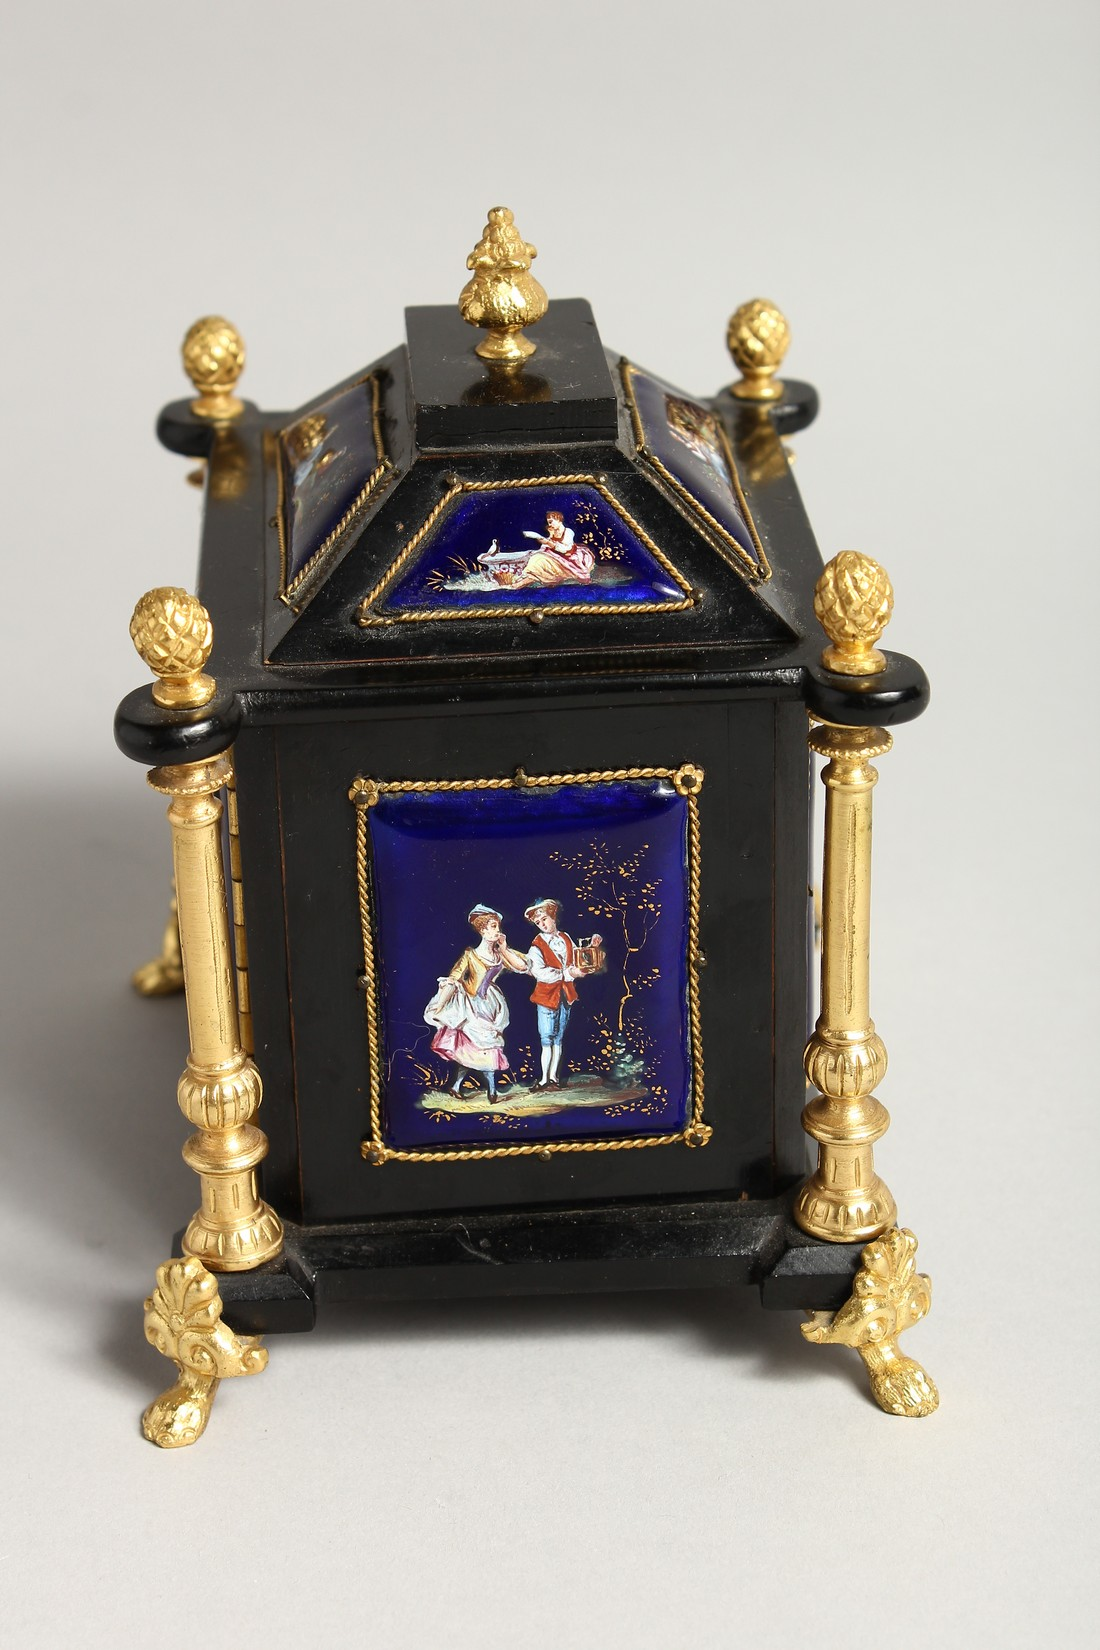 A VERY GOOD 19TH CENTURY LIMOGES CASKET with painted enamel panel, the door opening to reveal 2 - Image 4 of 7